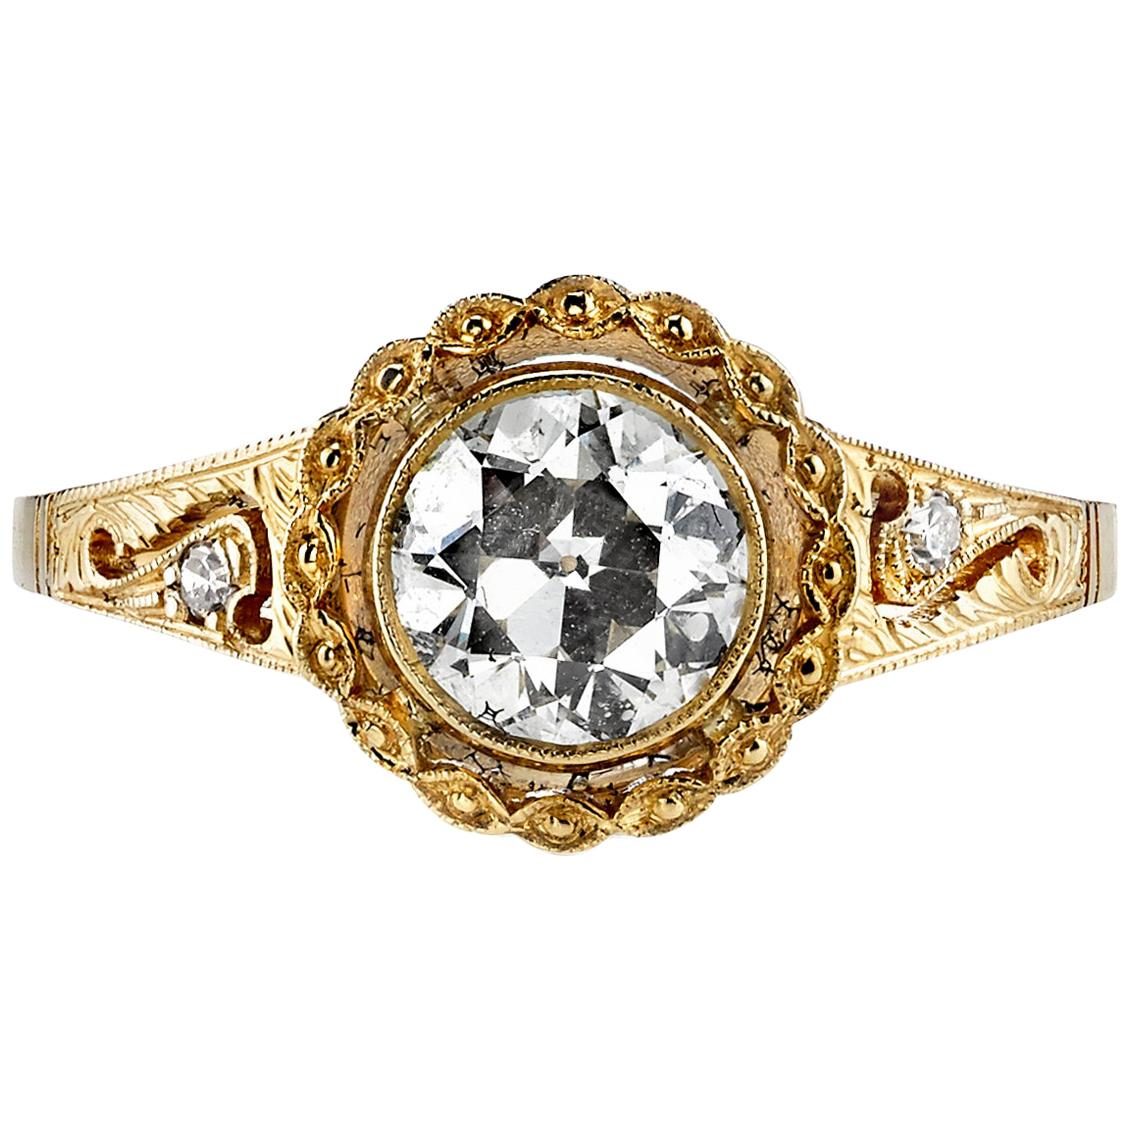 1.05 Carat Old European Cut Diamond Set in a Handcrafted 18K Yellow Gold Ring